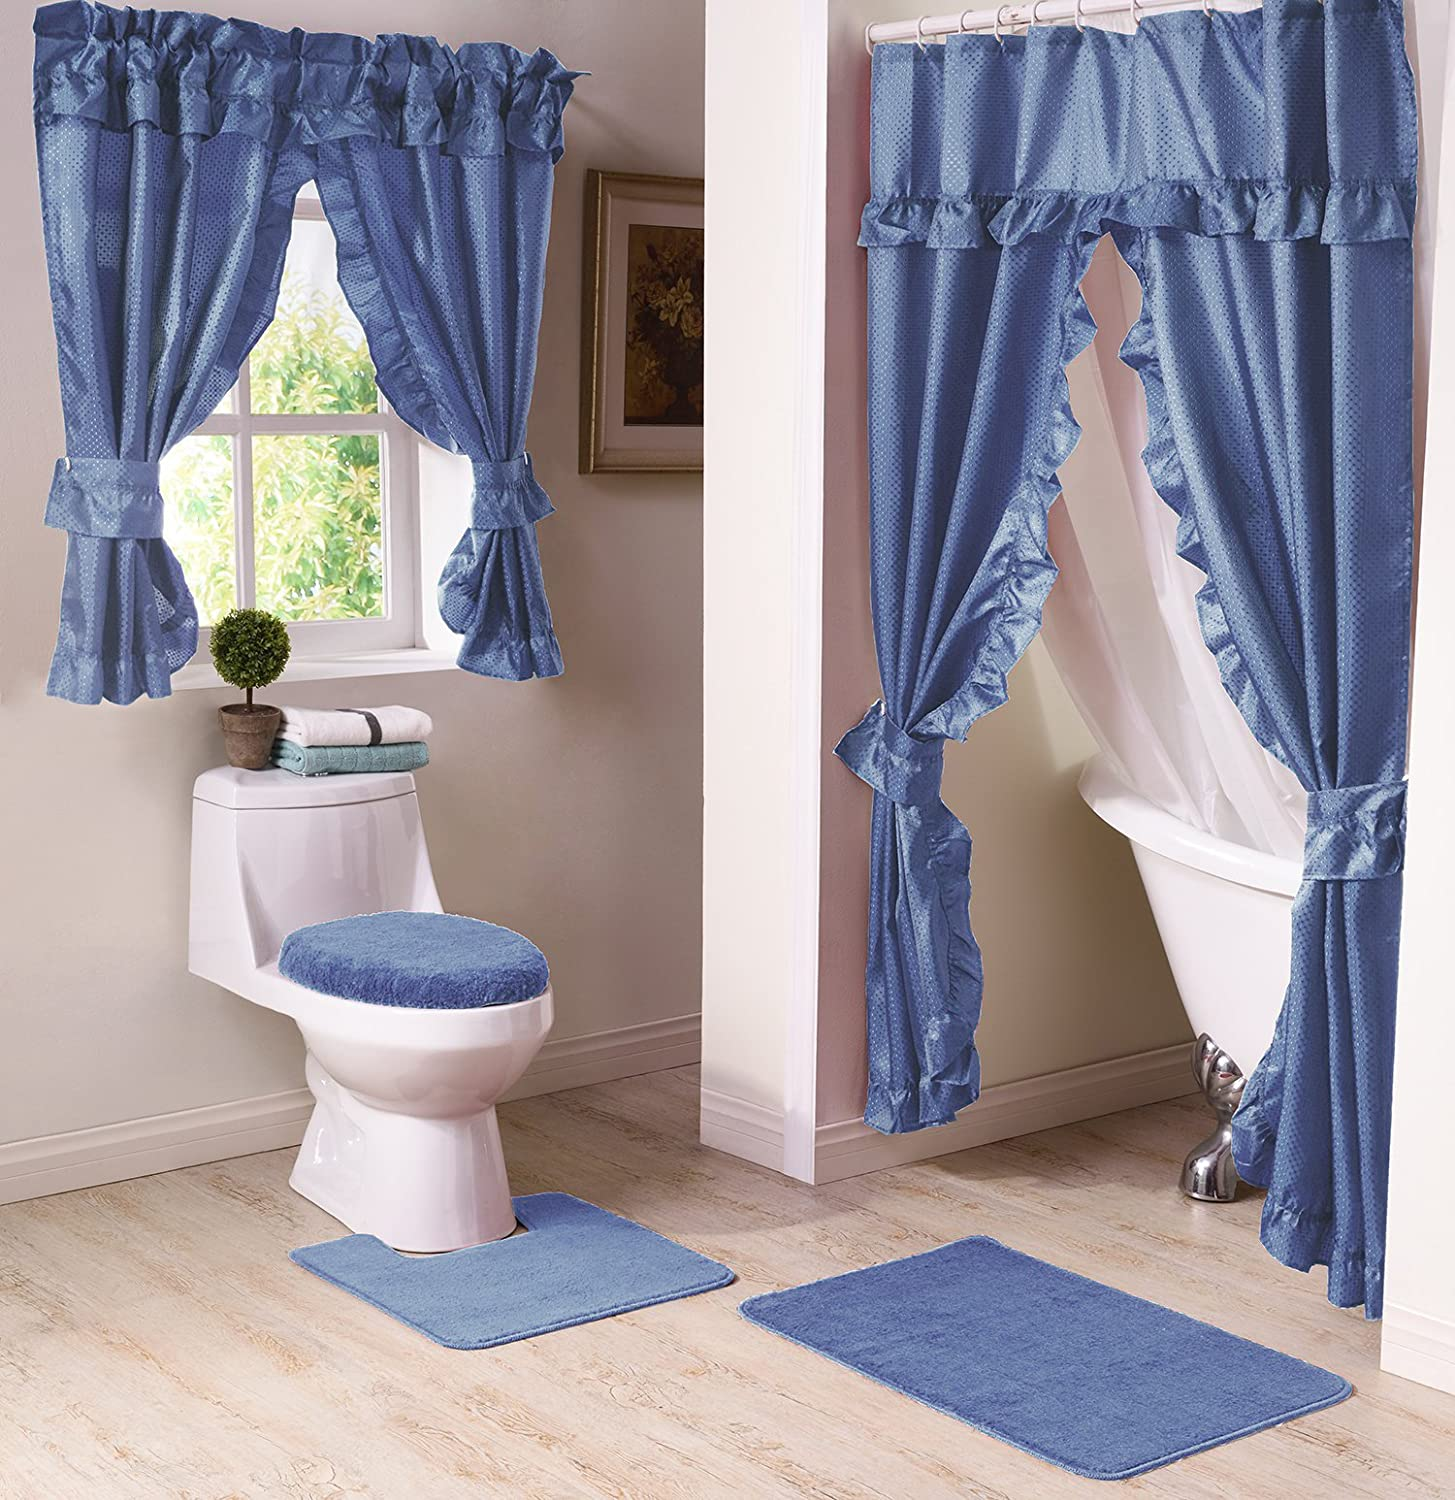 Madison MAD-SWG-WC-BL Bathroom Window Curtain, Blue Madison Industries